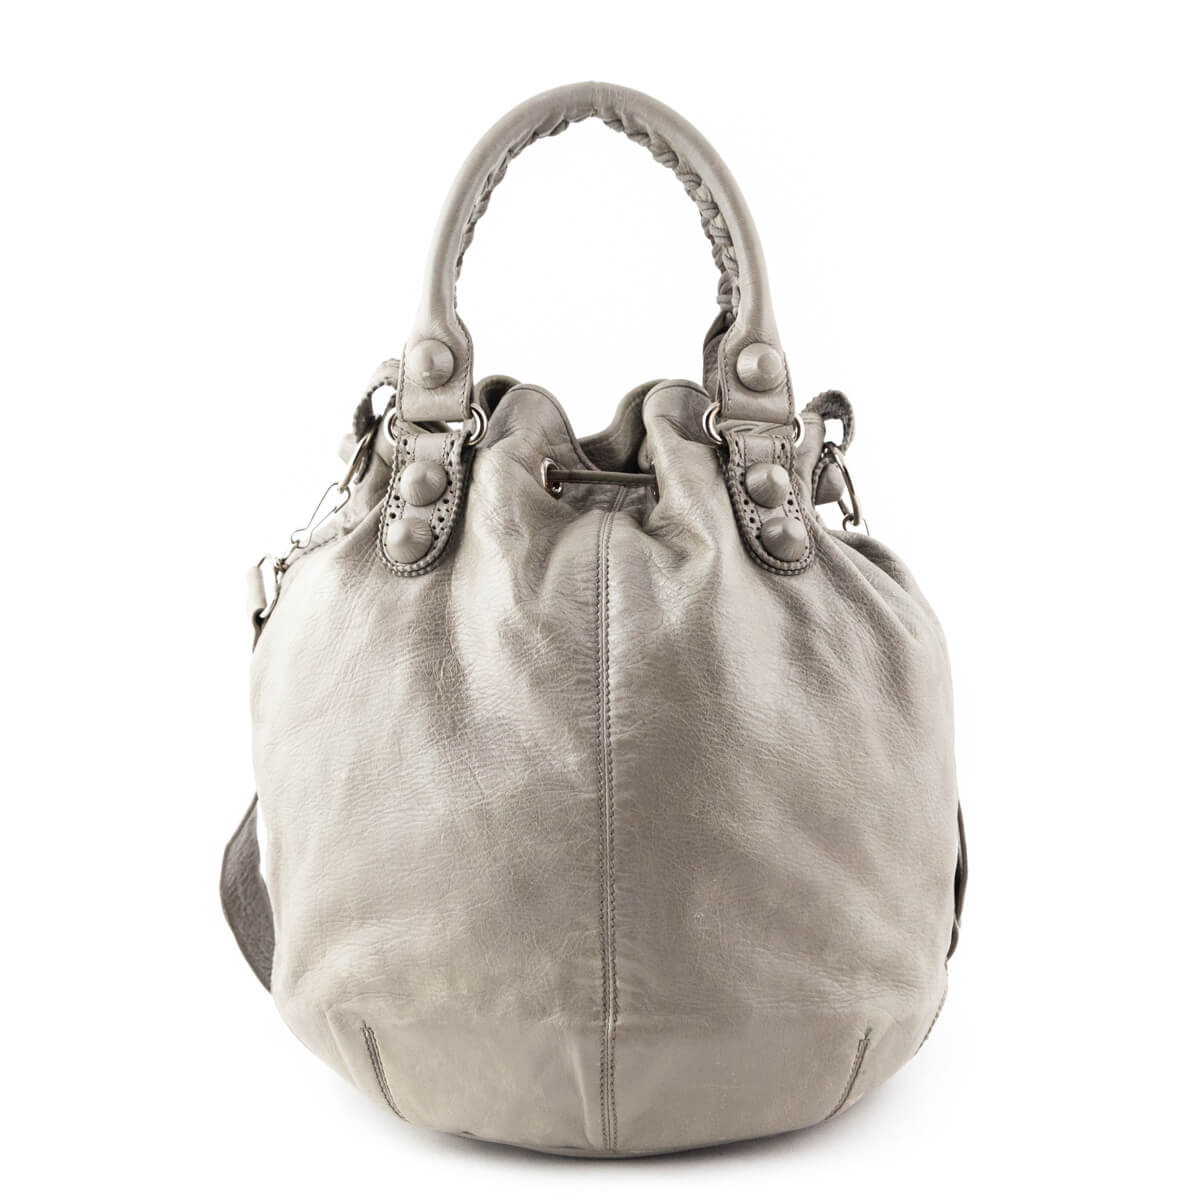 ... Balenciaga Galet Lambskin Giant Hardware Pom Pon Bag - LOVE that BAG -  Preowned Authentic Designer ... 6ed48d76ff07e